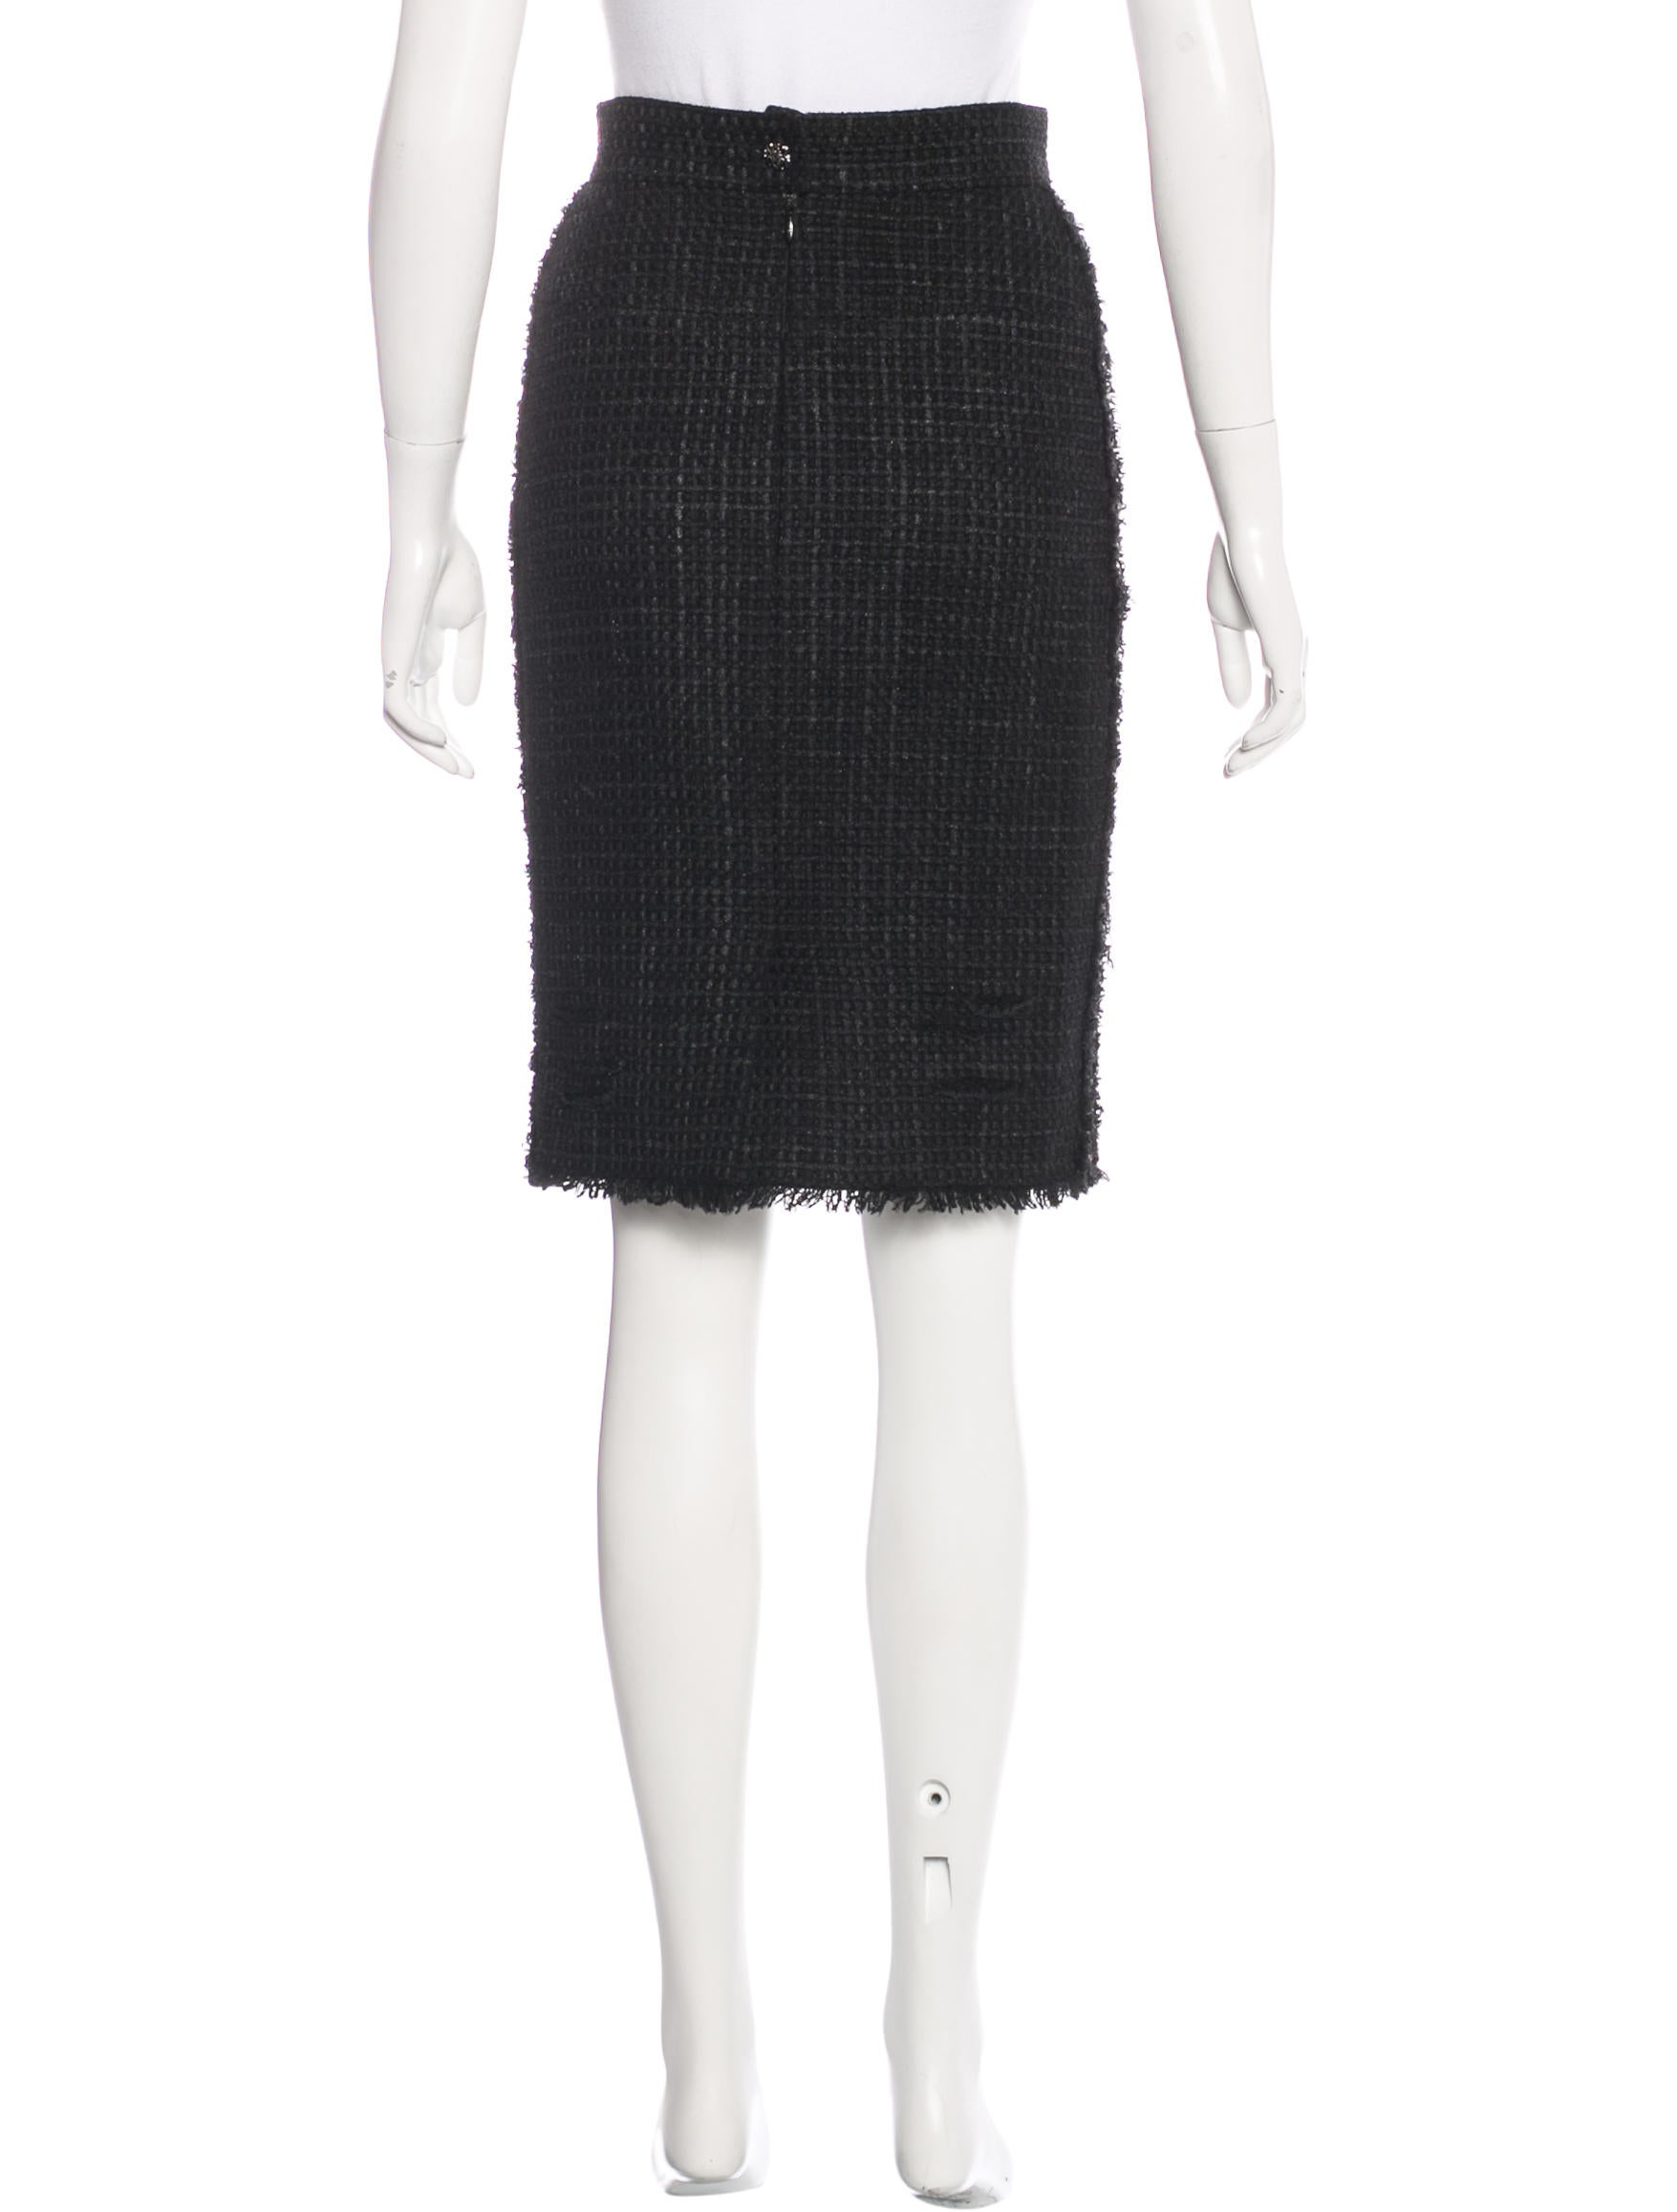 Chanel Distressed Tweed Skirt - Clothing - CHA158109   The RealReal